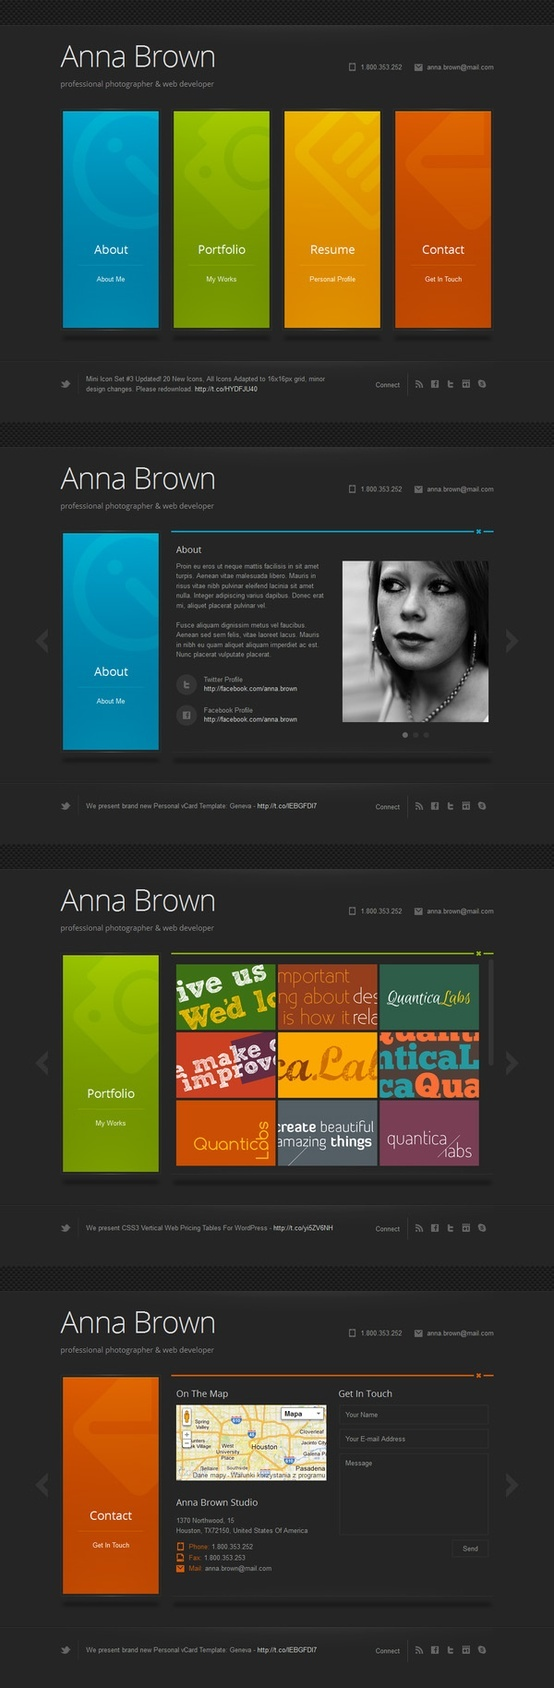 Cascade is a minimalist personal vCard WordPress theme based on vertical menu tabs. Tabs are presenting pages content. Each page is one Cascade tab